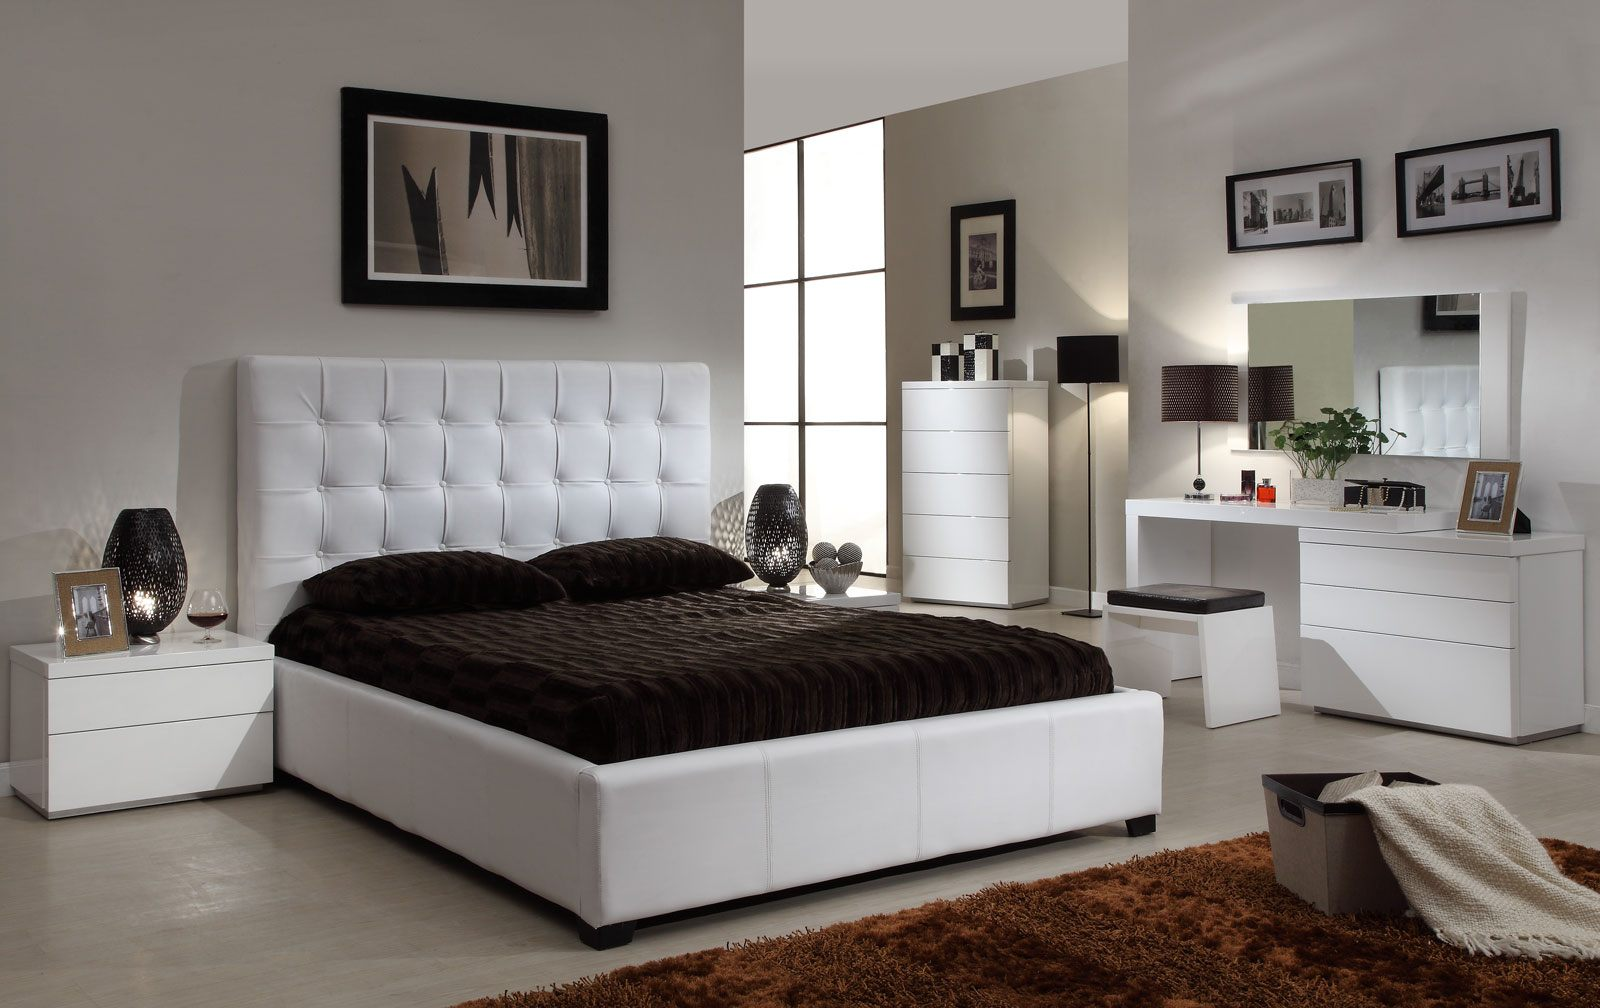 Online Bedroom Design: A Creativity Exercise